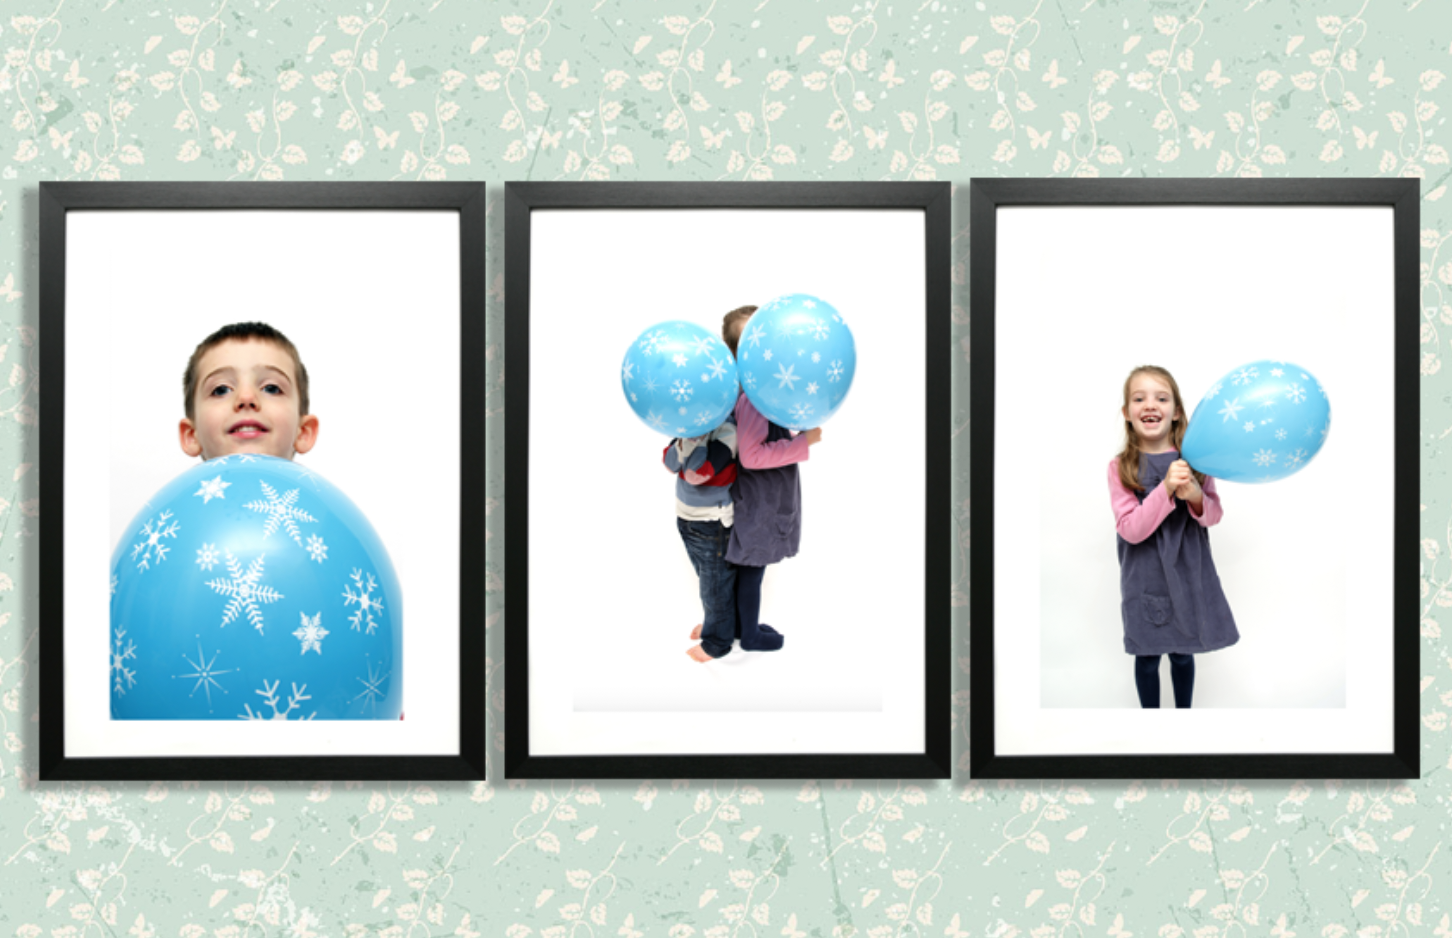 For this family's wall art package we used the balloon photographs from the session to create this set of three framed prints.